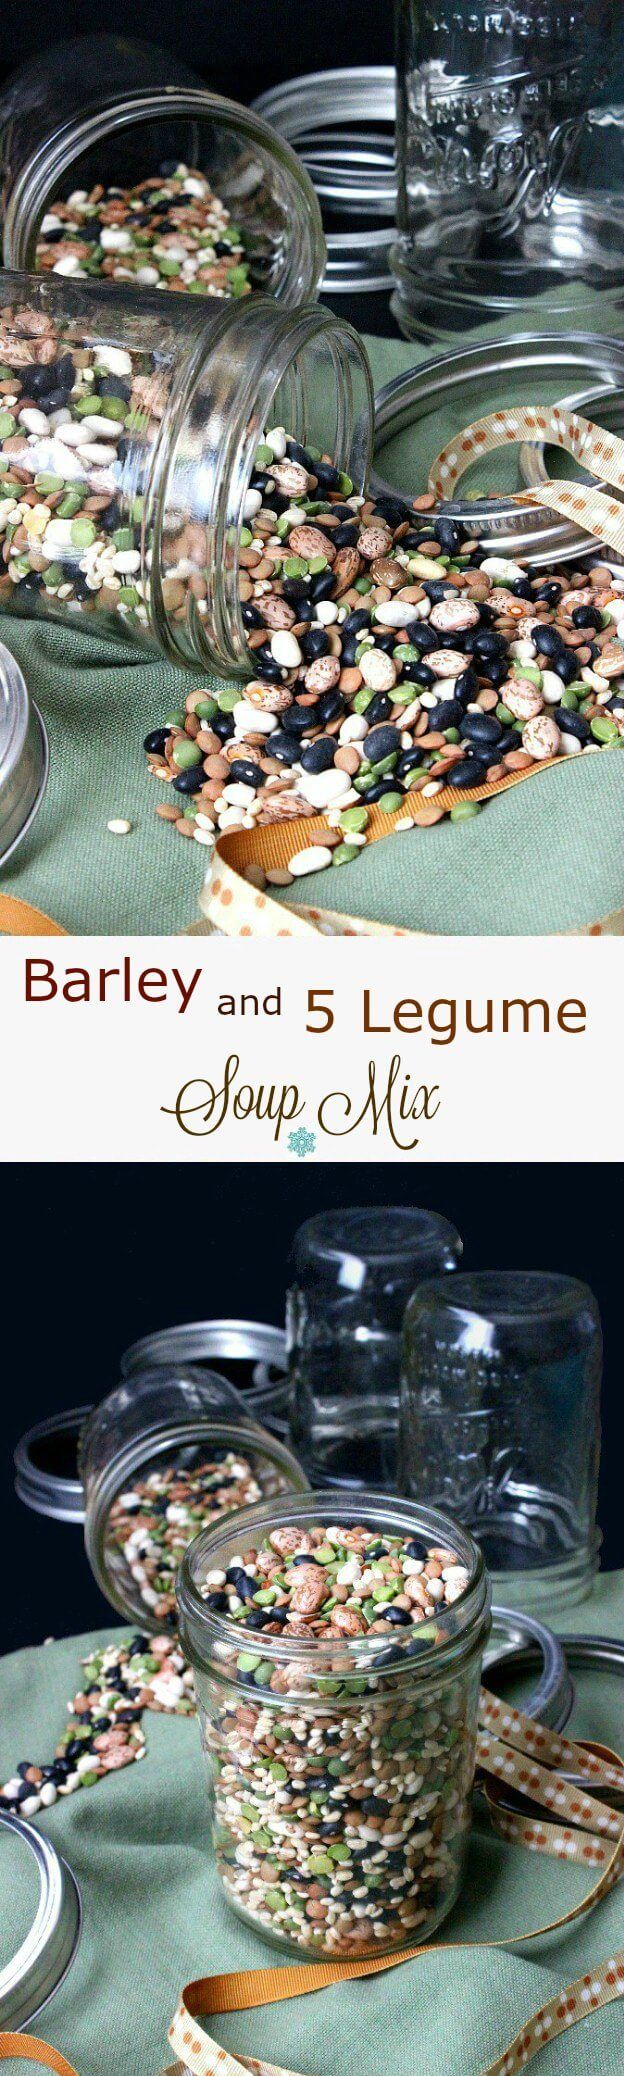 Barley and 5 Legume Soup Mix is an easy and updated gift. So pretty on the counter or fill jars as a gift for loved ones and attach the recipe.